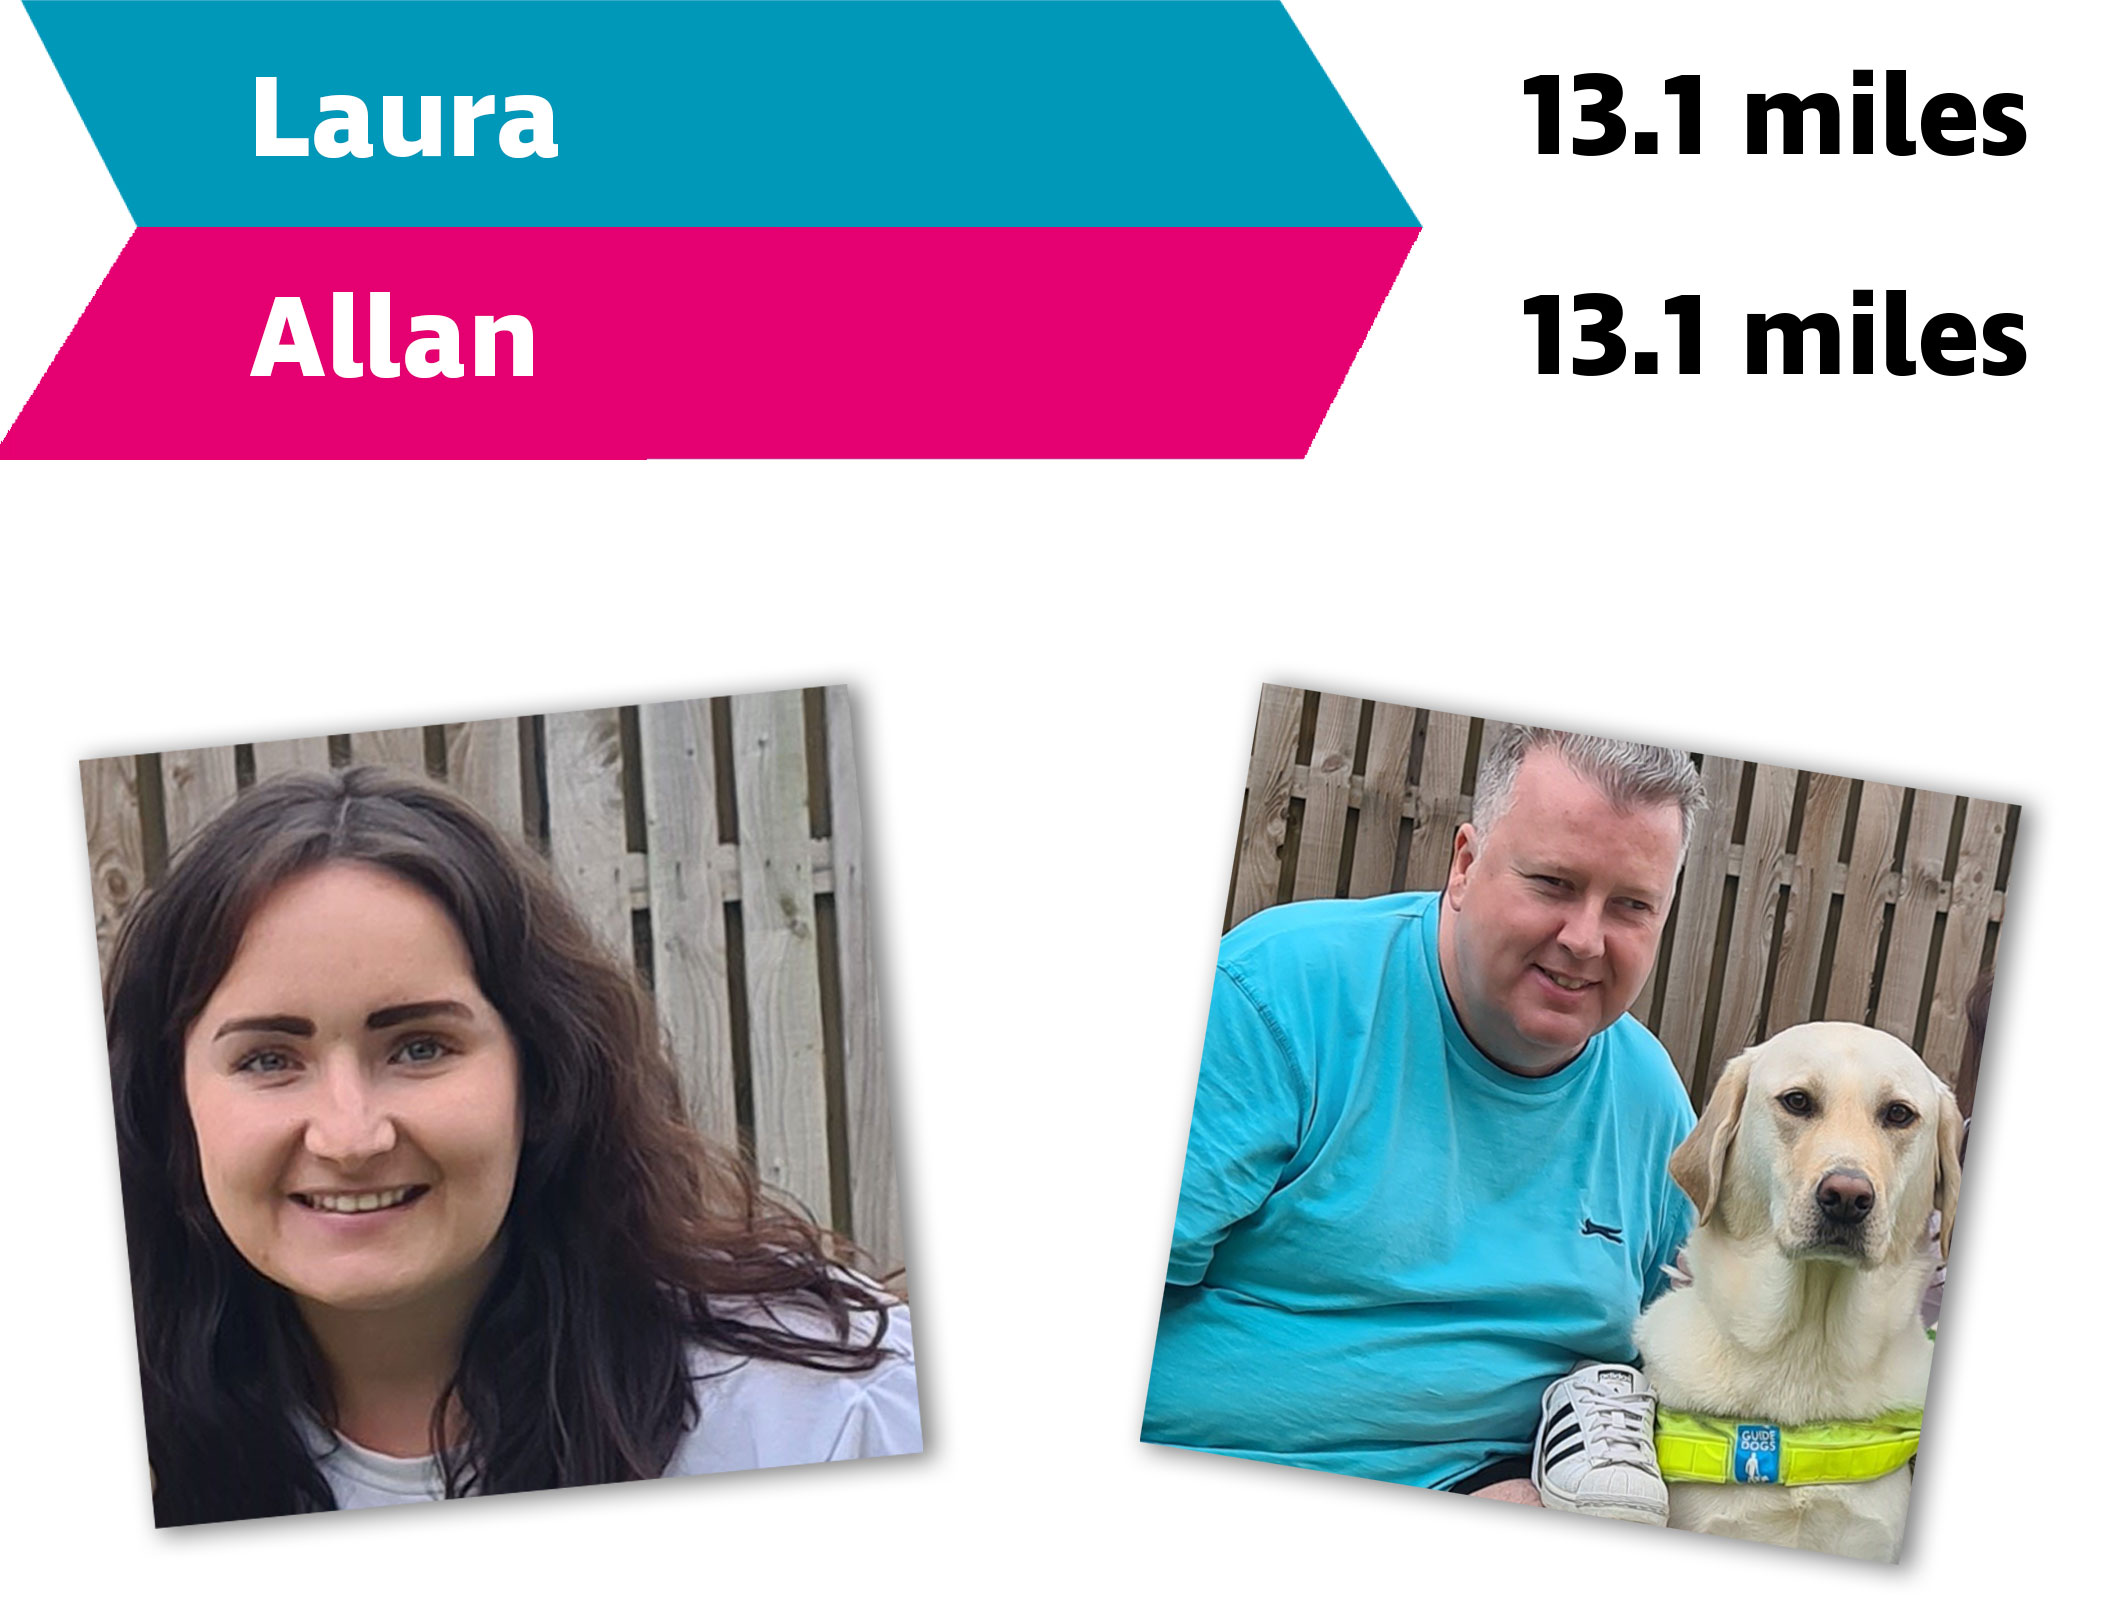 Images of young girl and a man with his guide dog with a graphic that shows they're each running 13.1 miles.